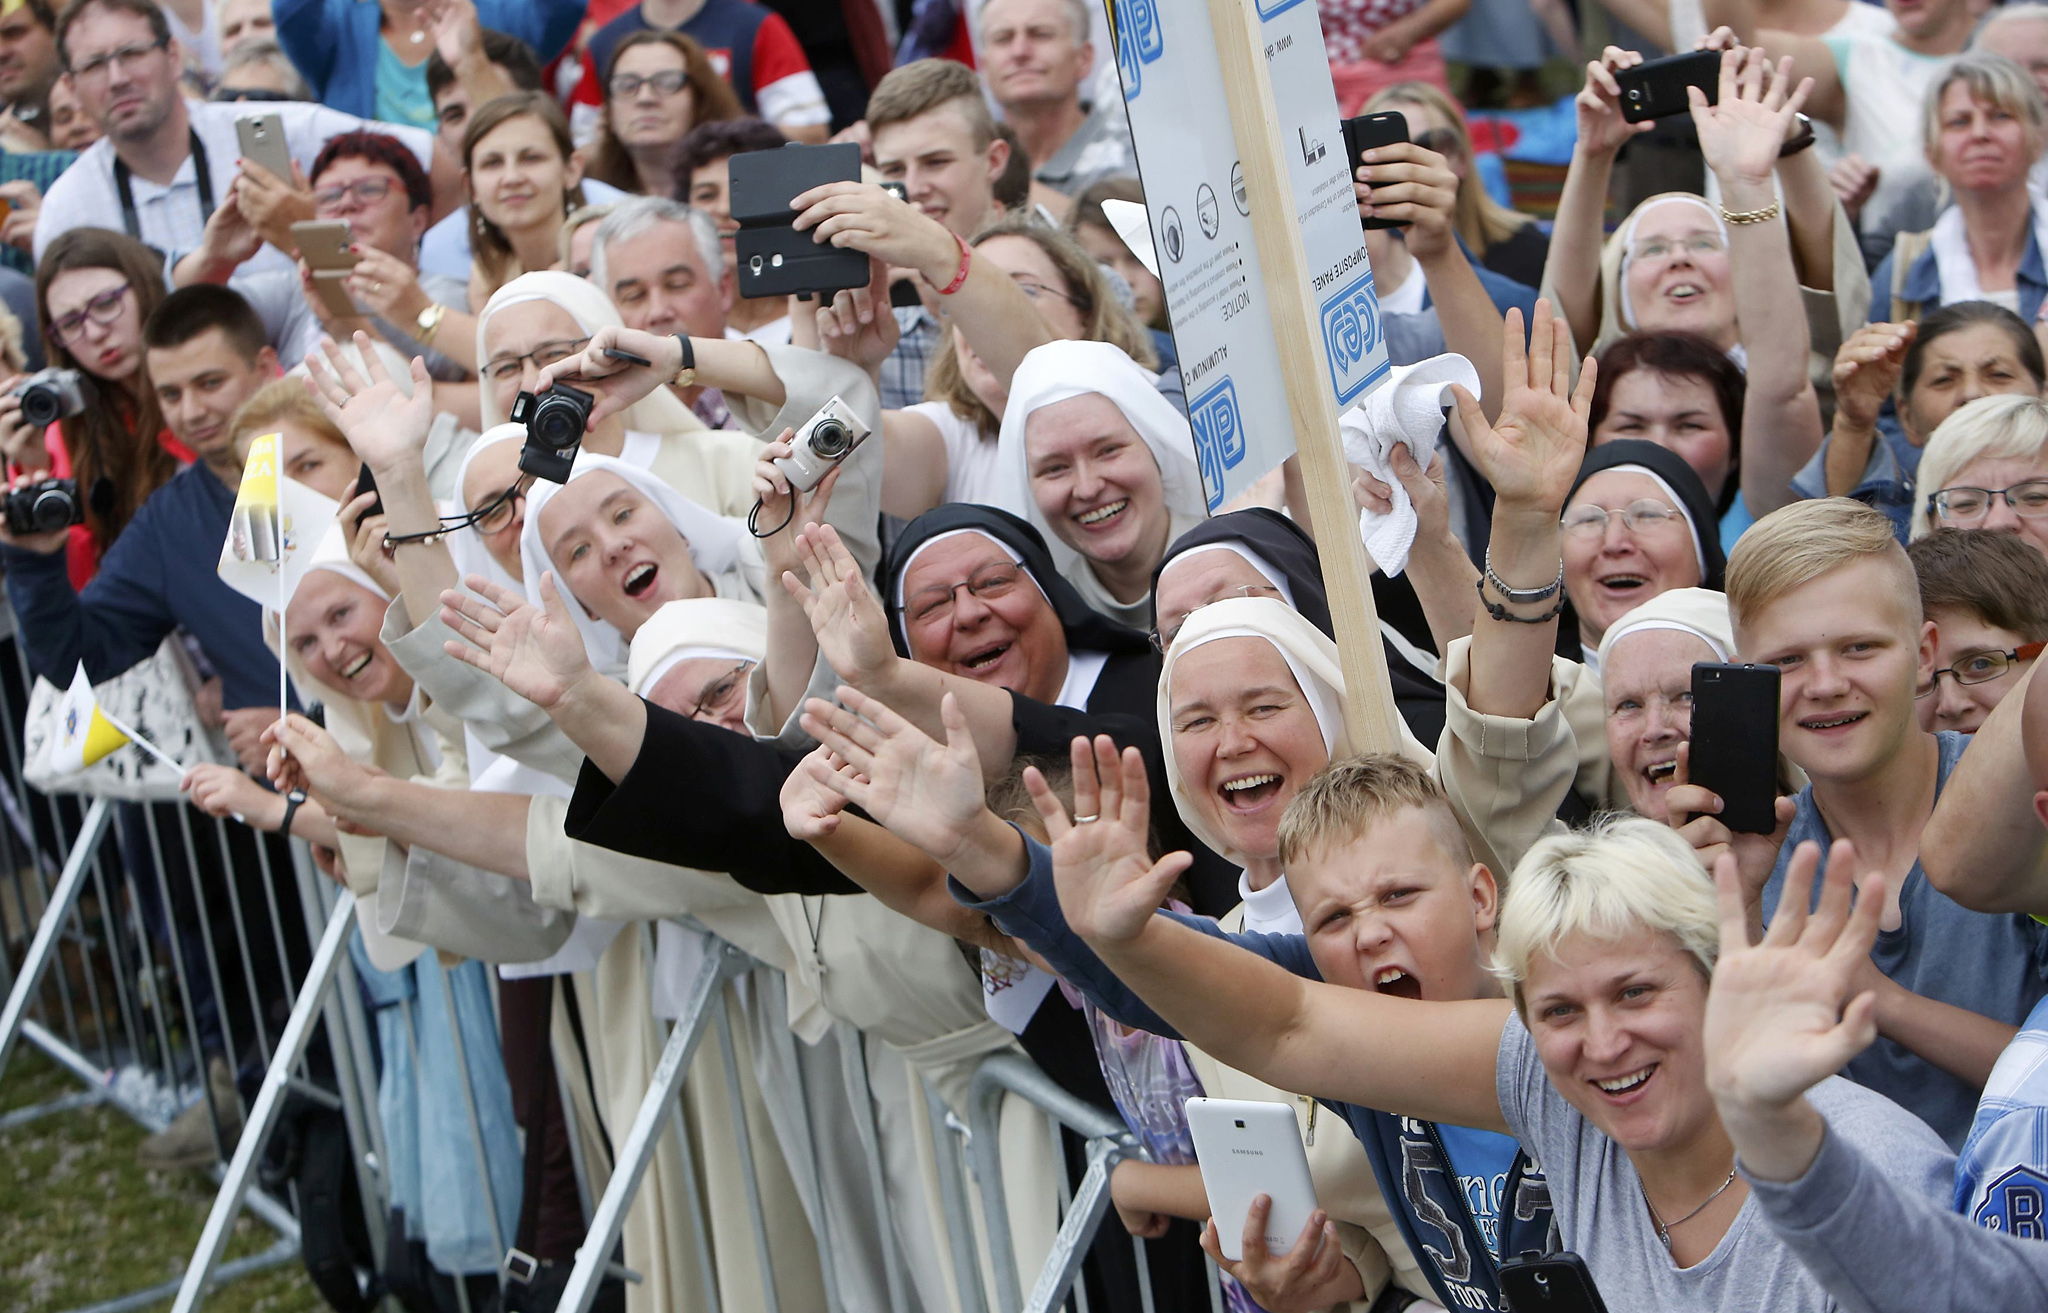 Faithfuls greet Pope Francis as he arrives at the Jasna Gora shrine in Czestochowa, Poland July 28, 2016. REUTERS/David W Cerny